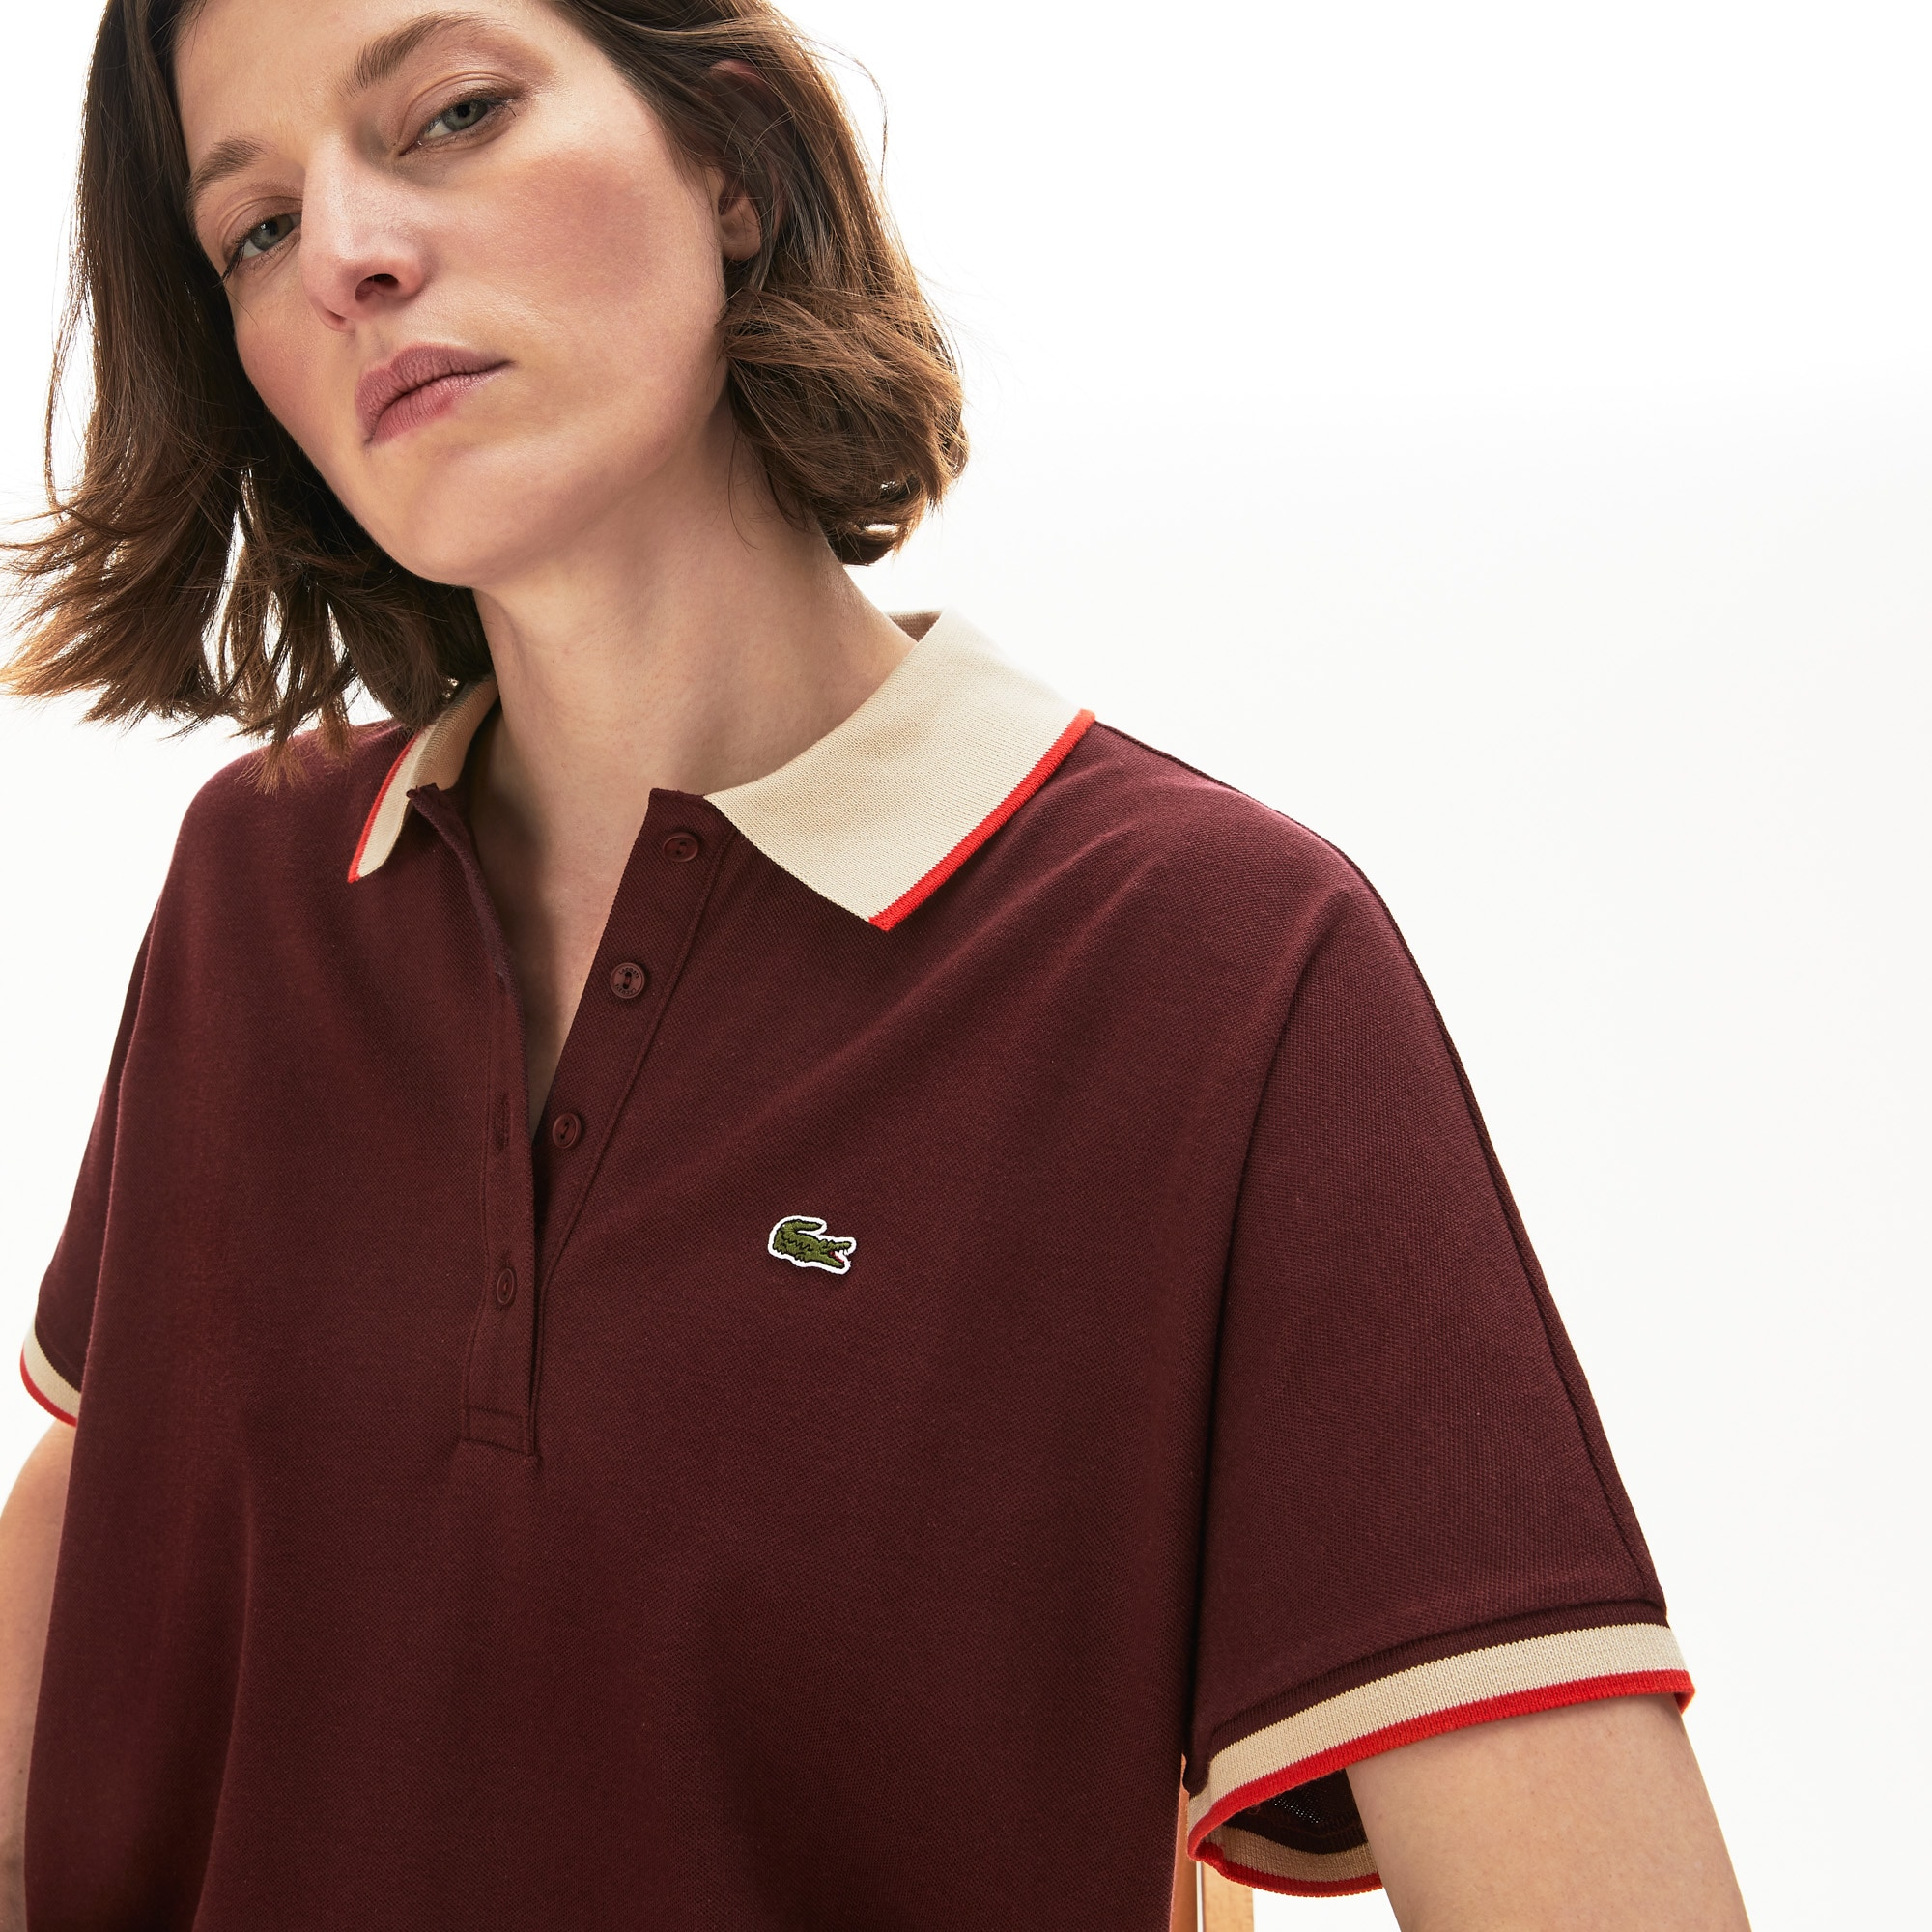 Damen LACOSTE Poloshirt in Relax Fit